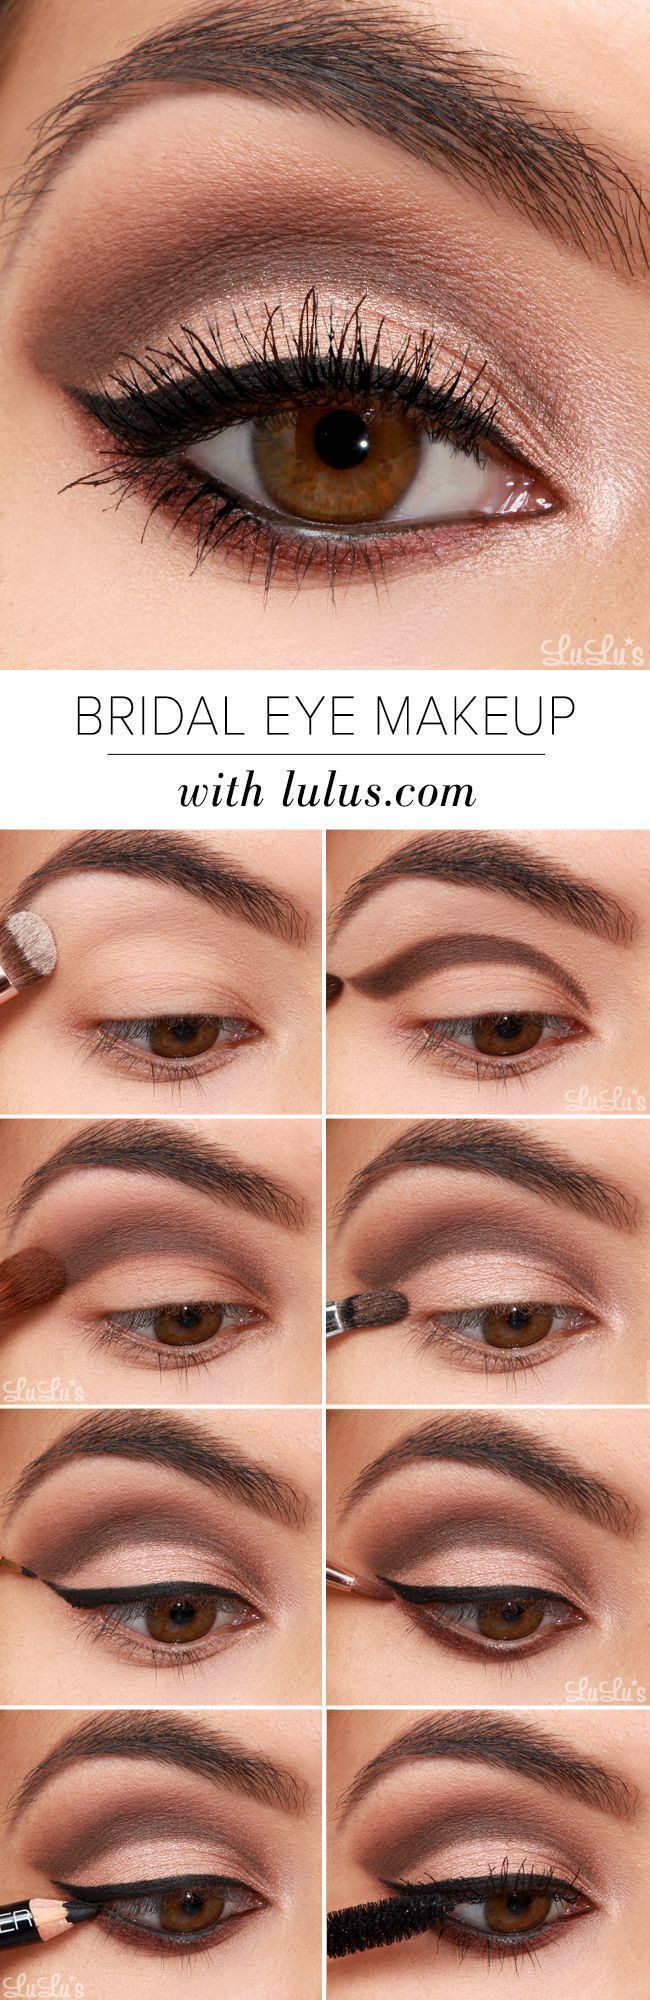 17 Super Basic Eye Makeup Ideas for Beginners #makeup #organizator #wedding #pro…